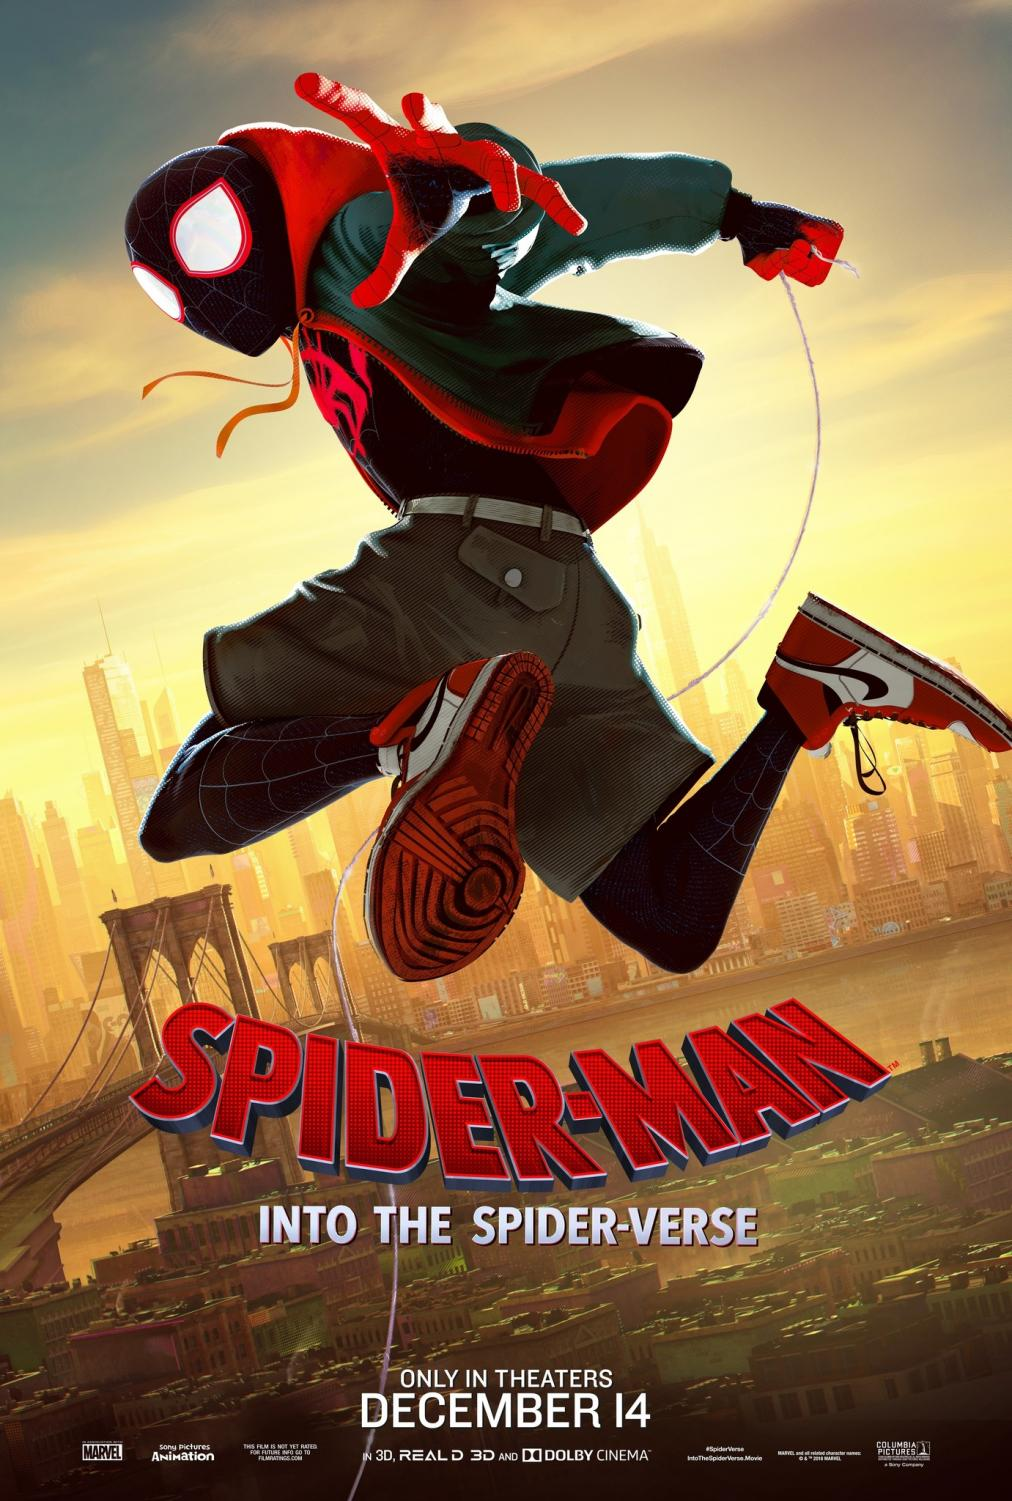 Spider-Man: Into the Spiderverse poster courtesy of IMDb, Marvel, and Sony under Creative Commons License